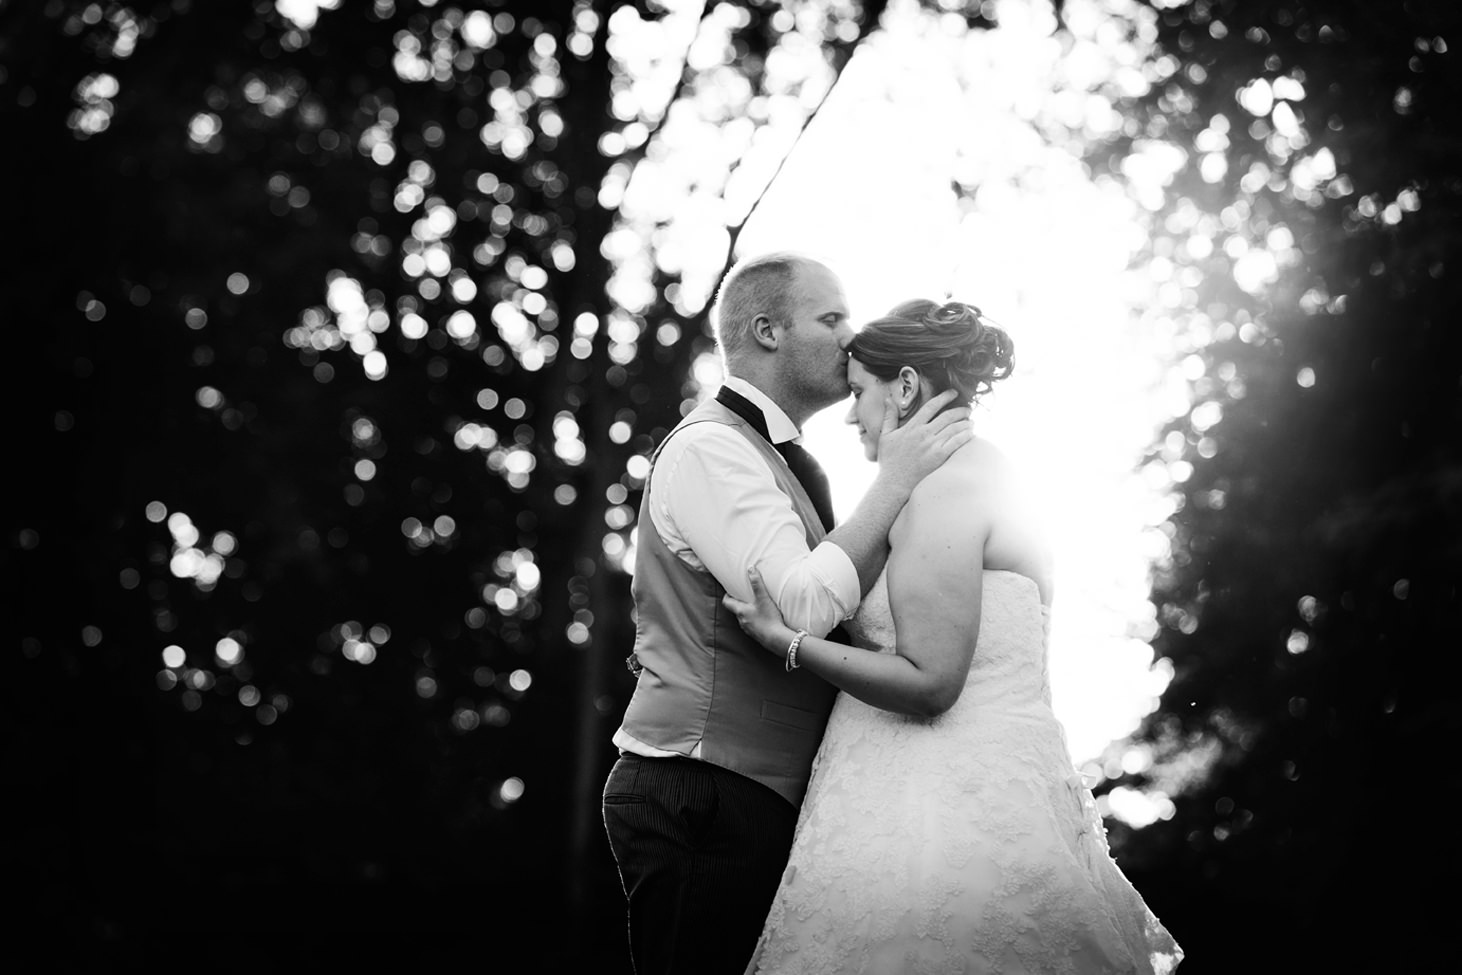 Wycombe Abbey wedding photography golden hour bride and groom